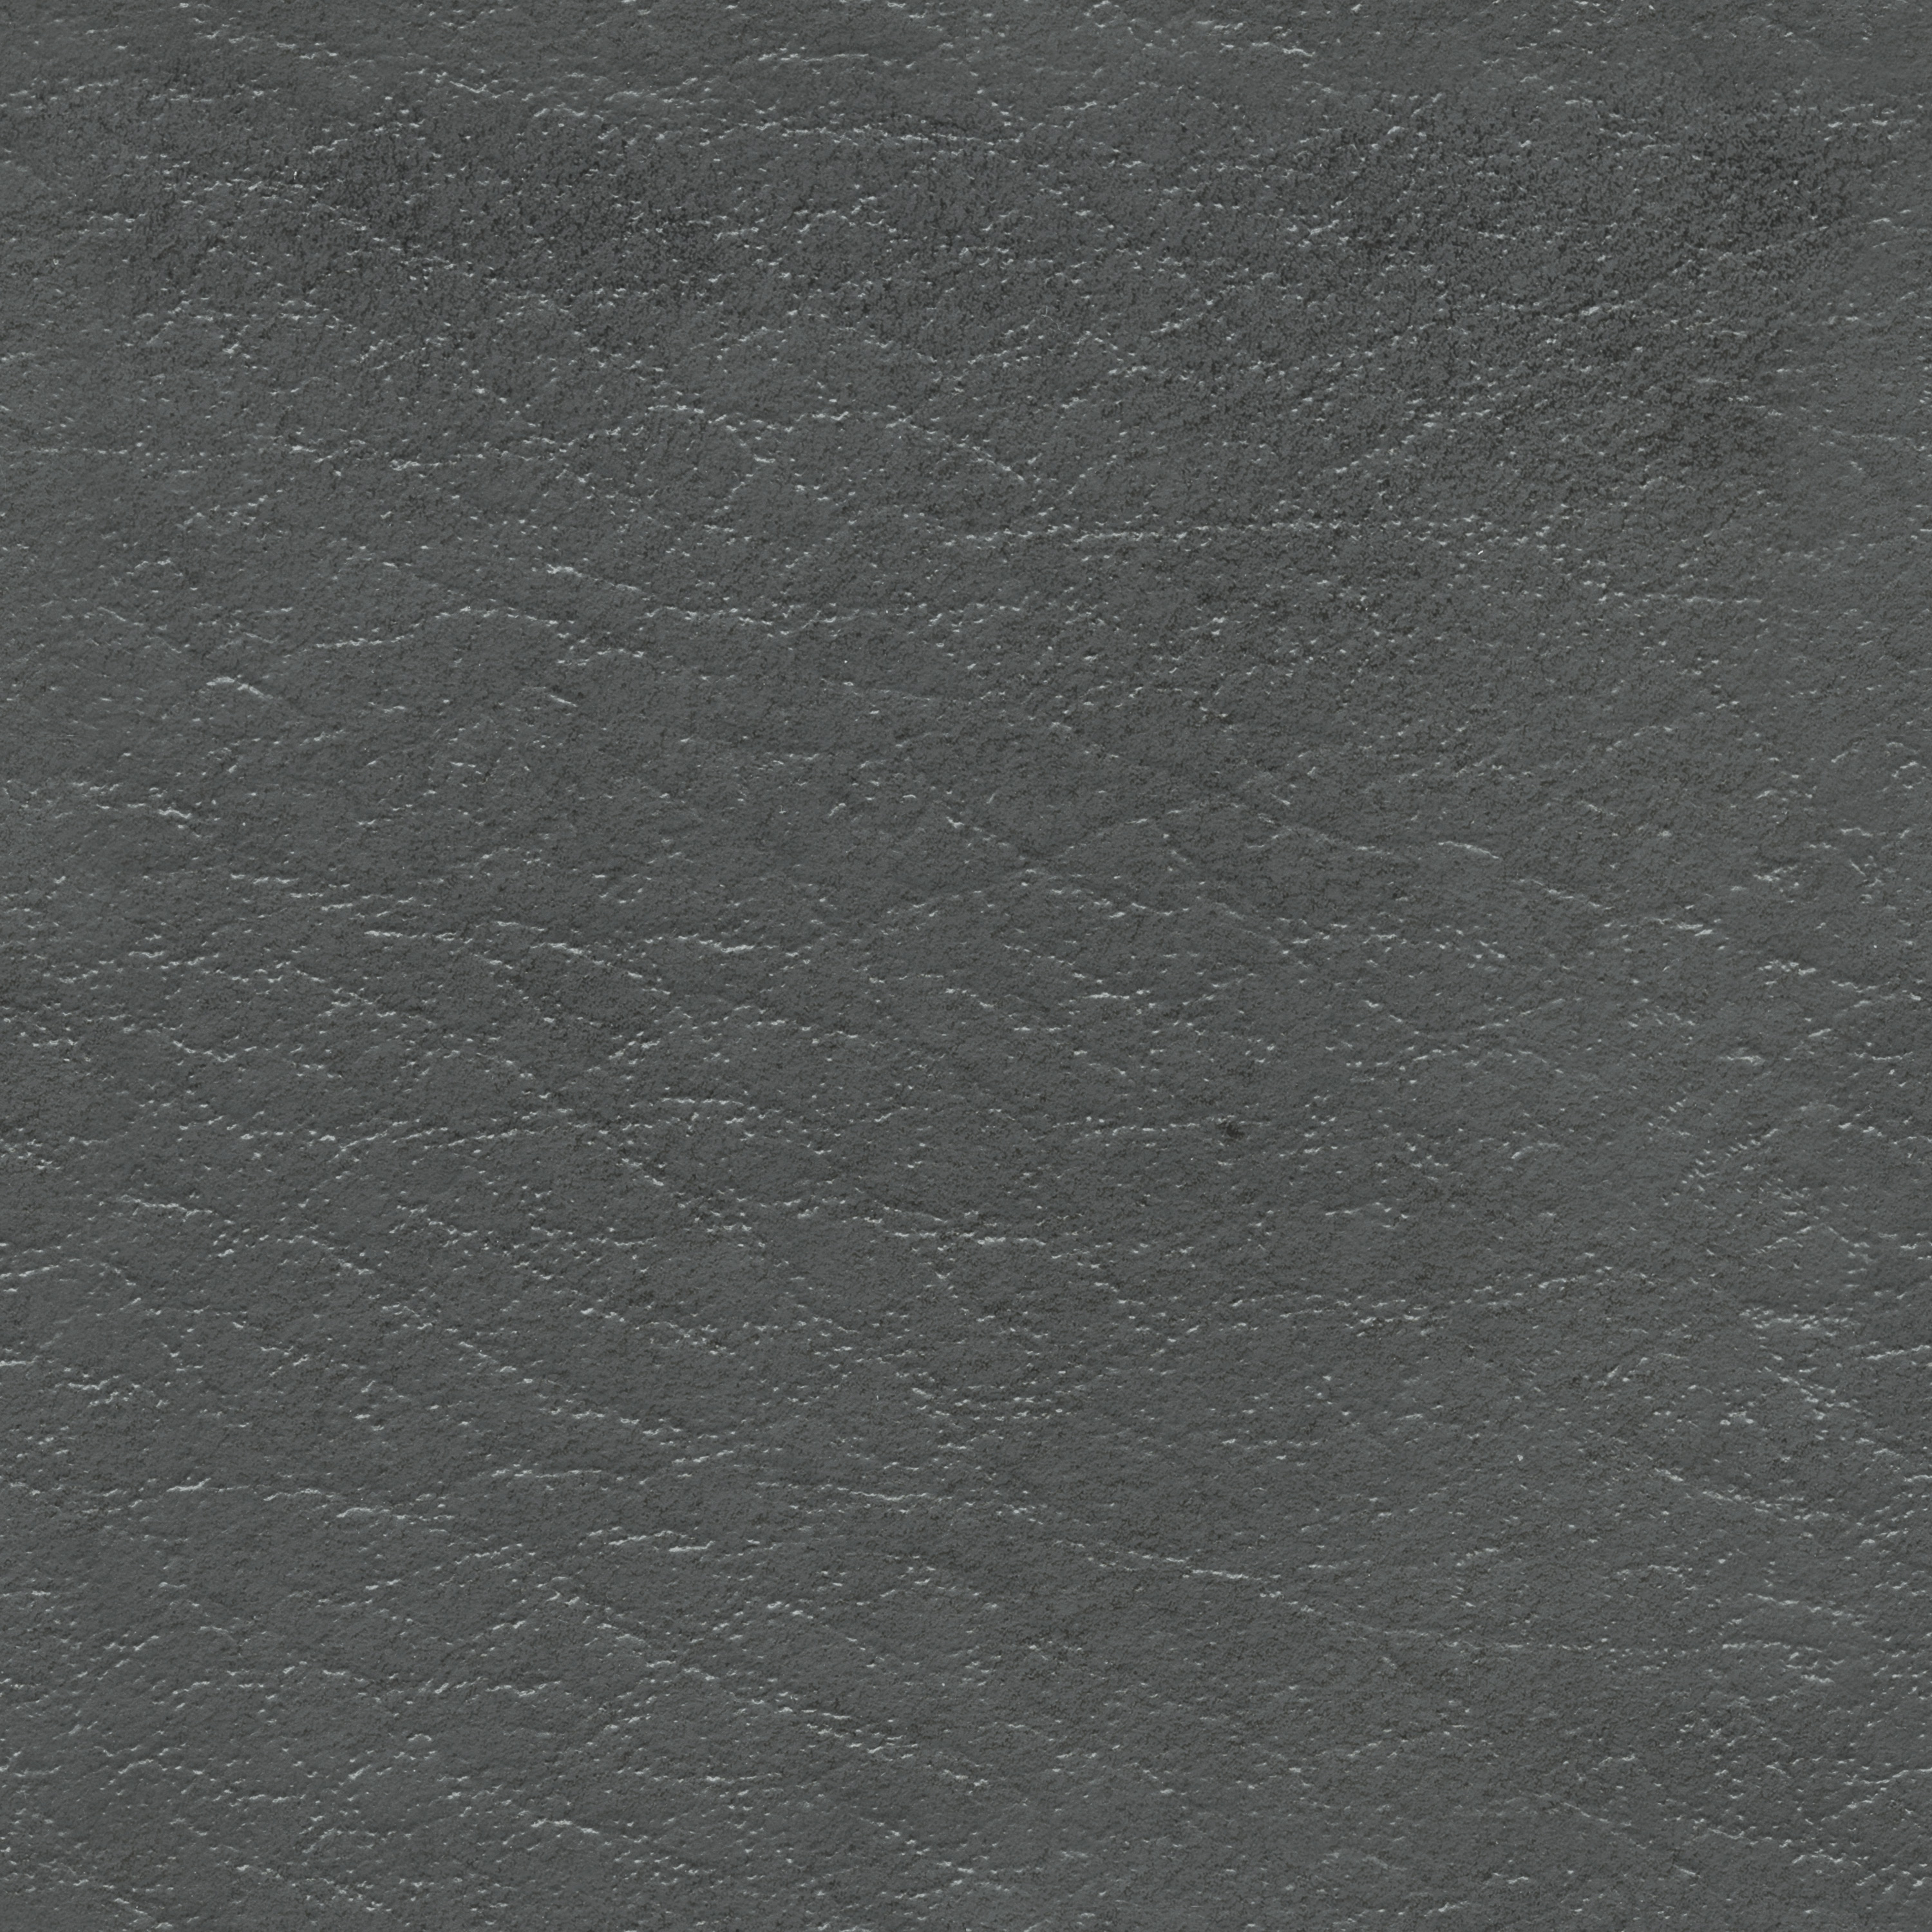 Book Cover Texture ~ Free seamless book cover textures texture l t